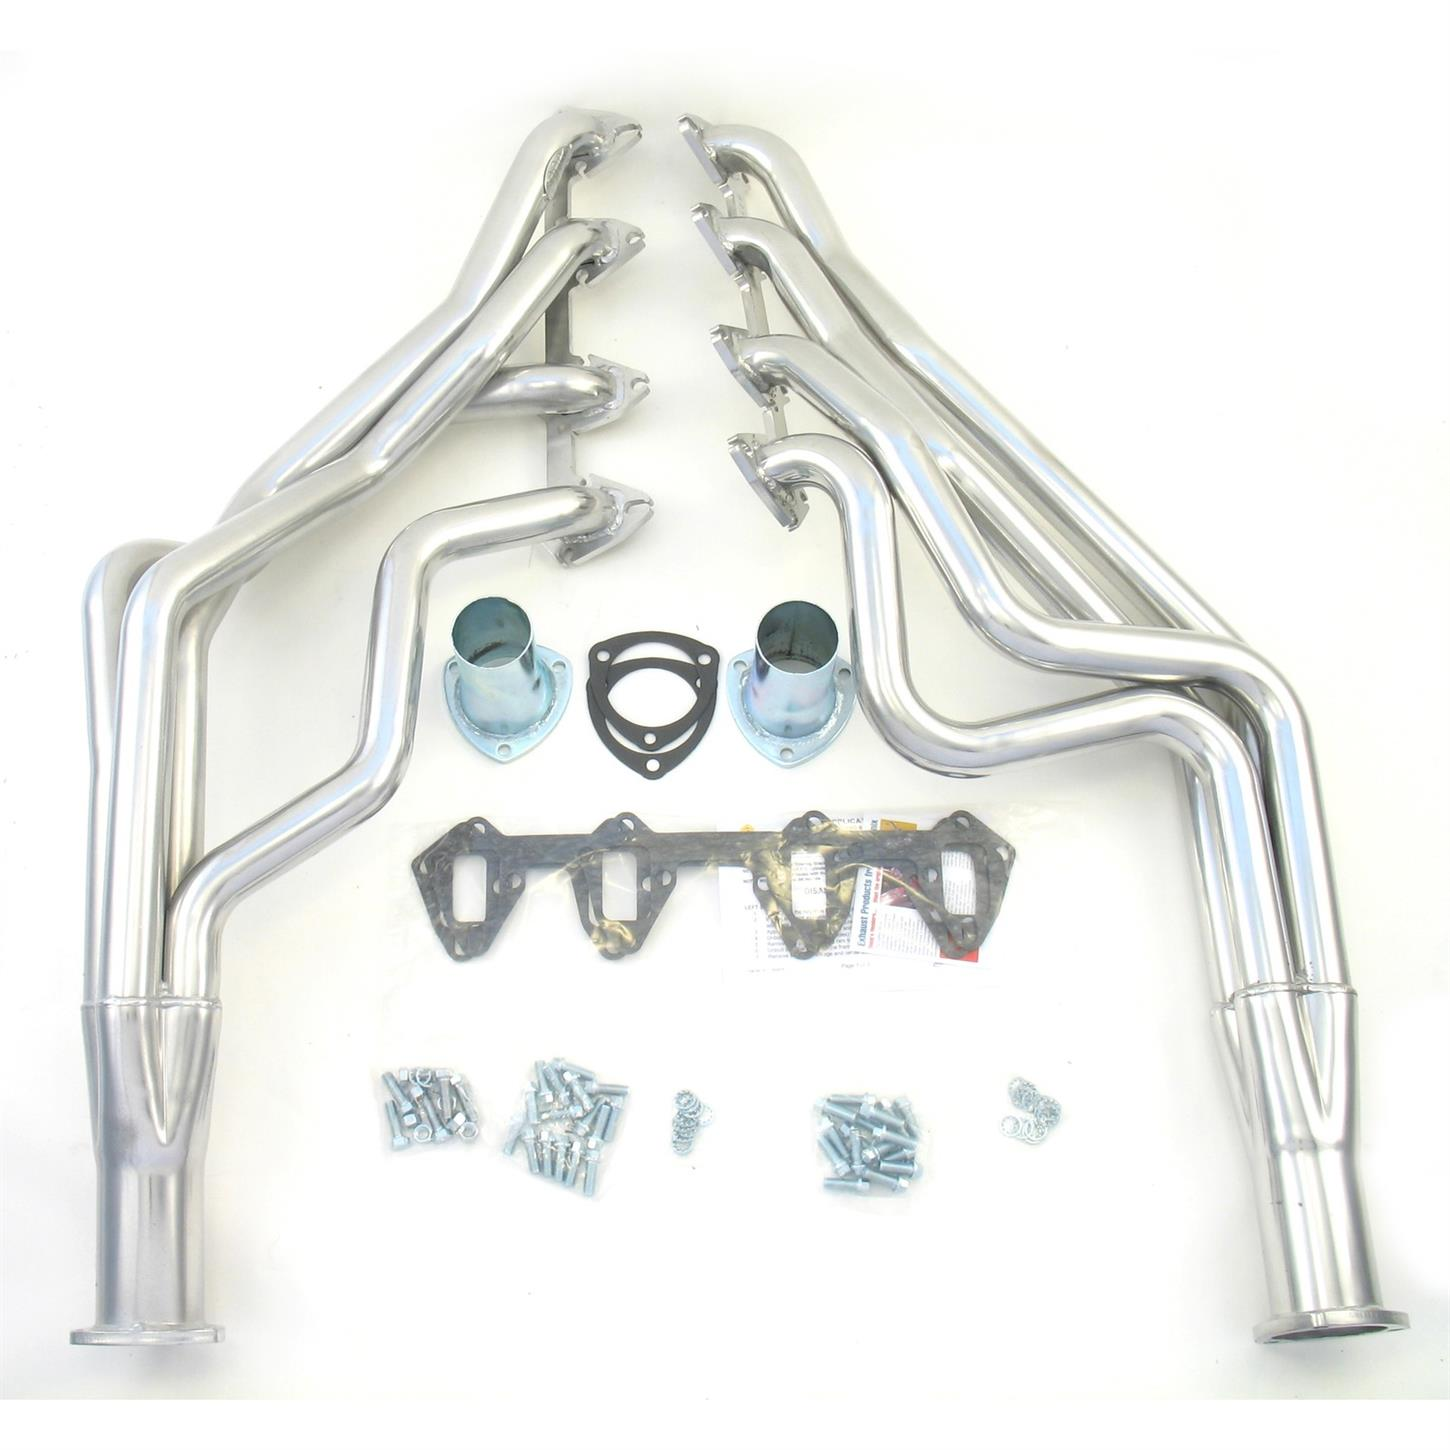 Dougs Headers D627-R 2 4-Tube Full Length Exhaust Header for Ford Mustang FE 67-70